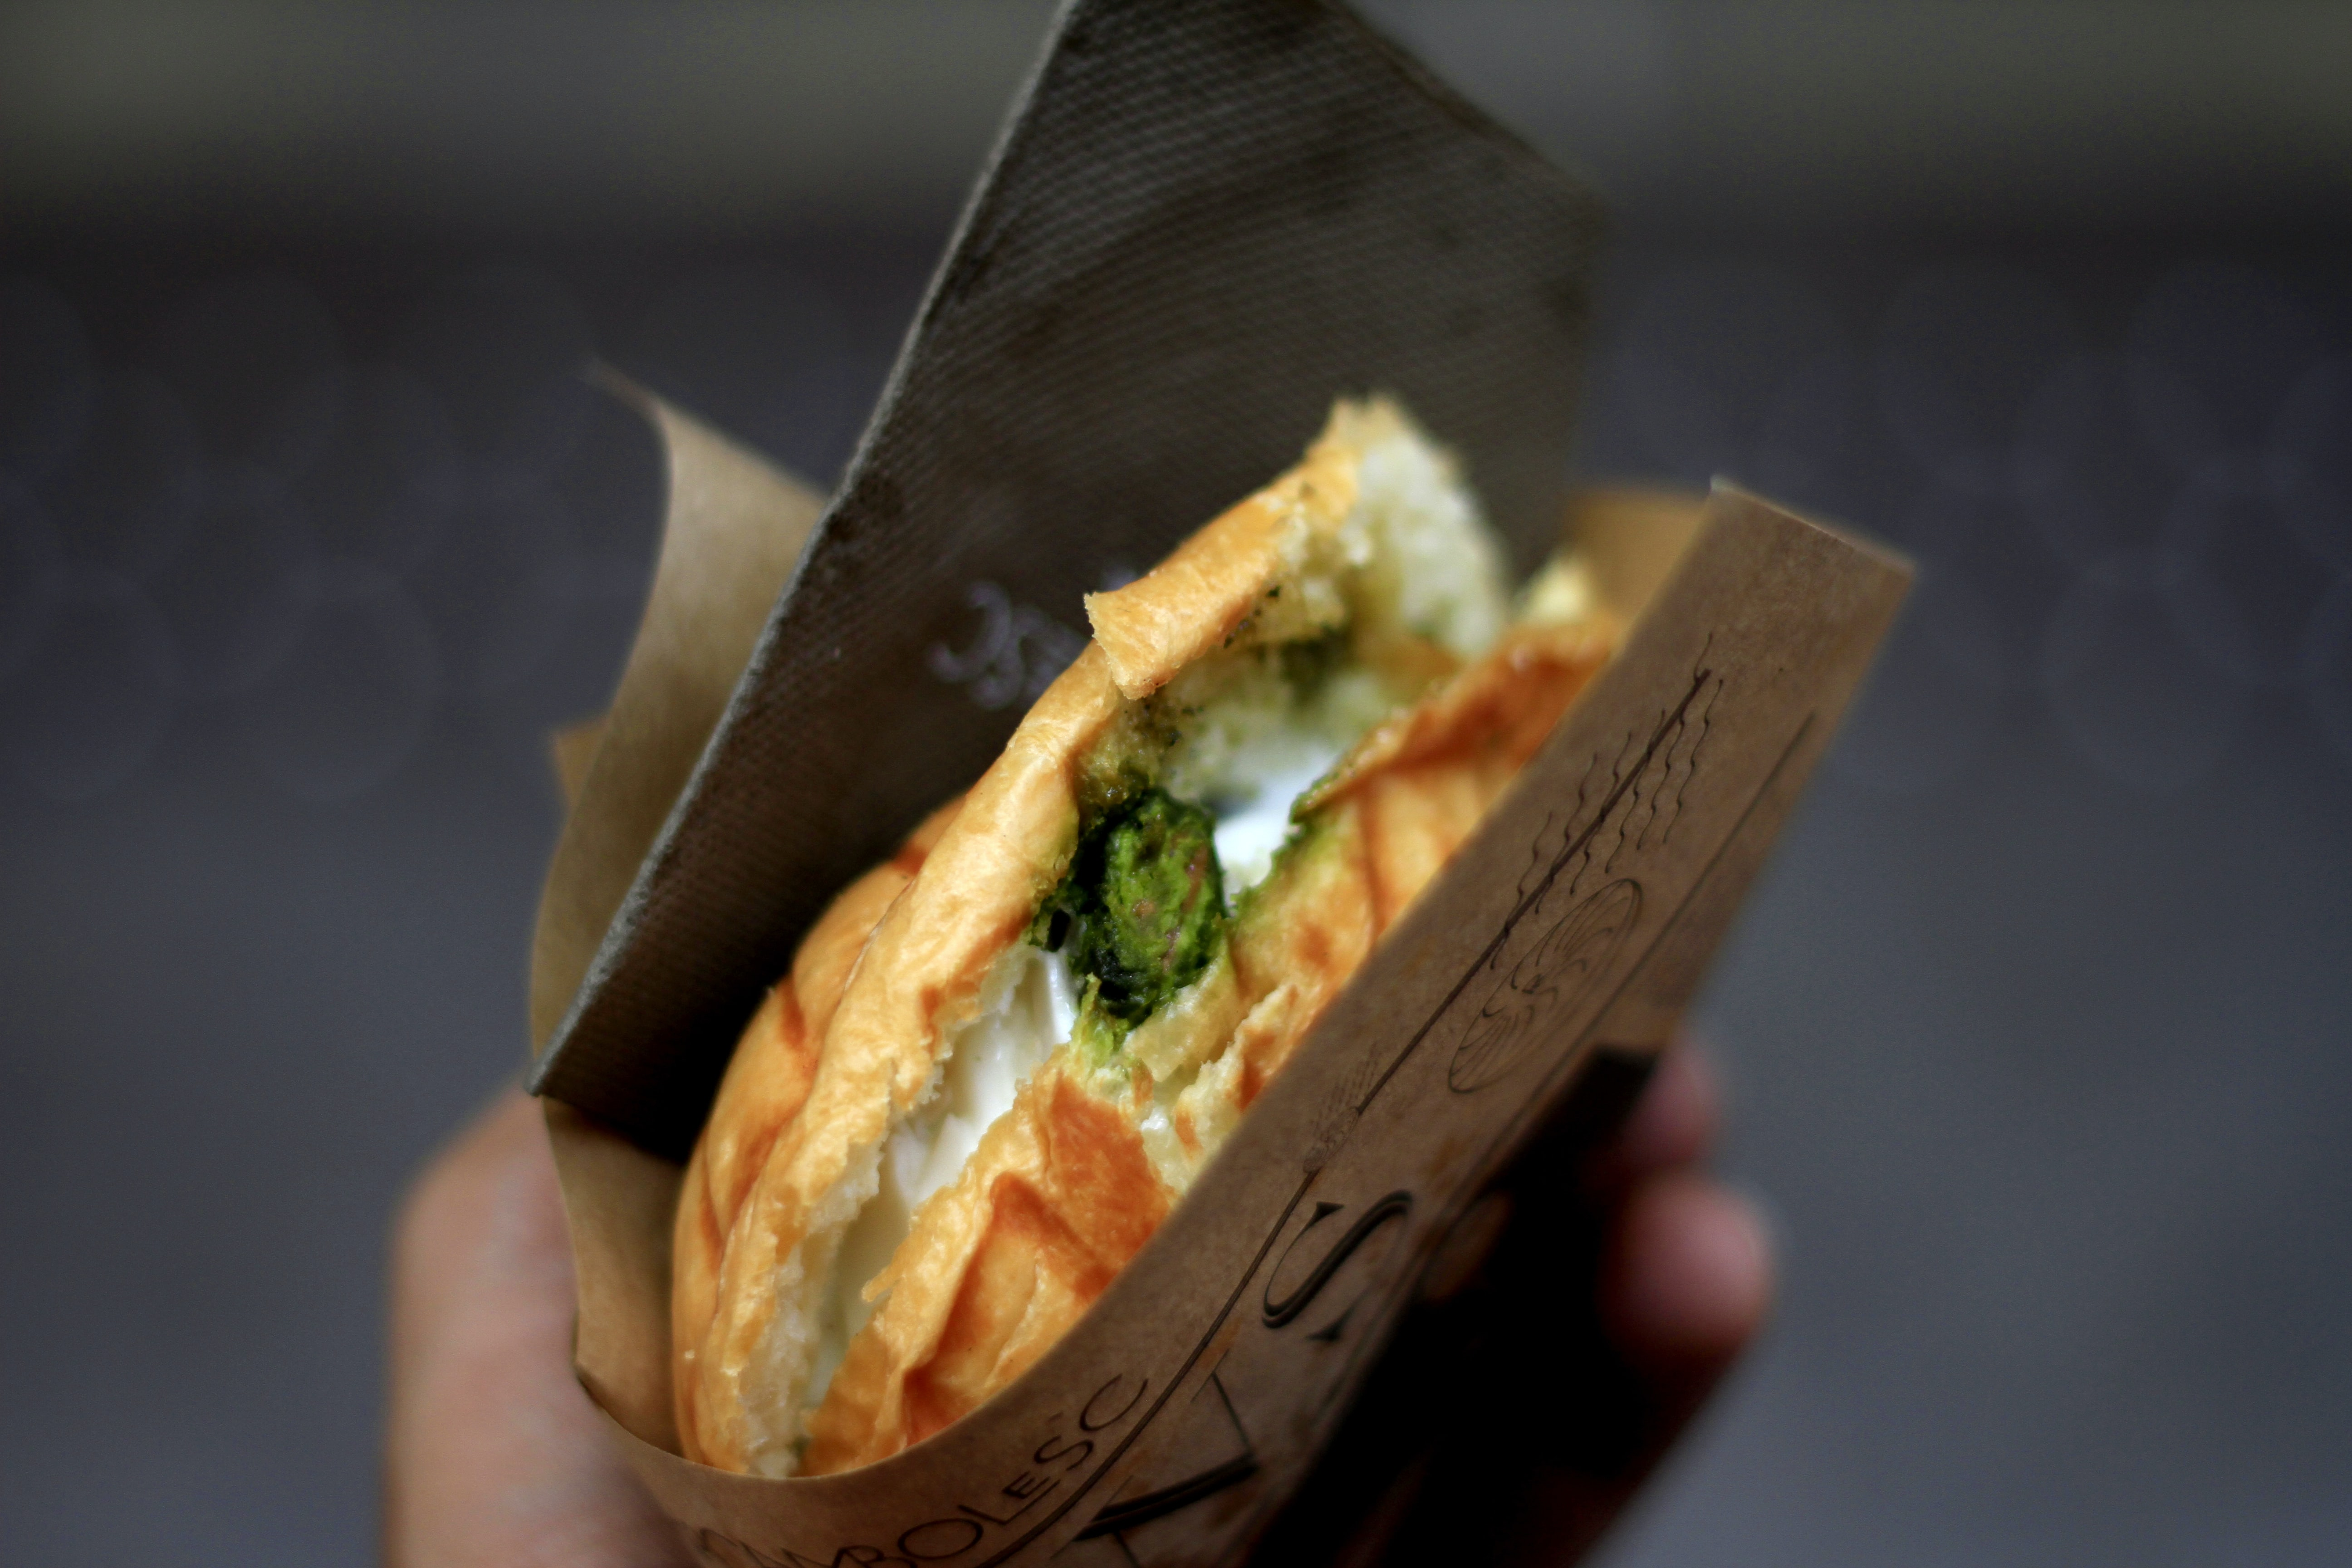 Panini sandwich with cheese and vegetables from a street vendor